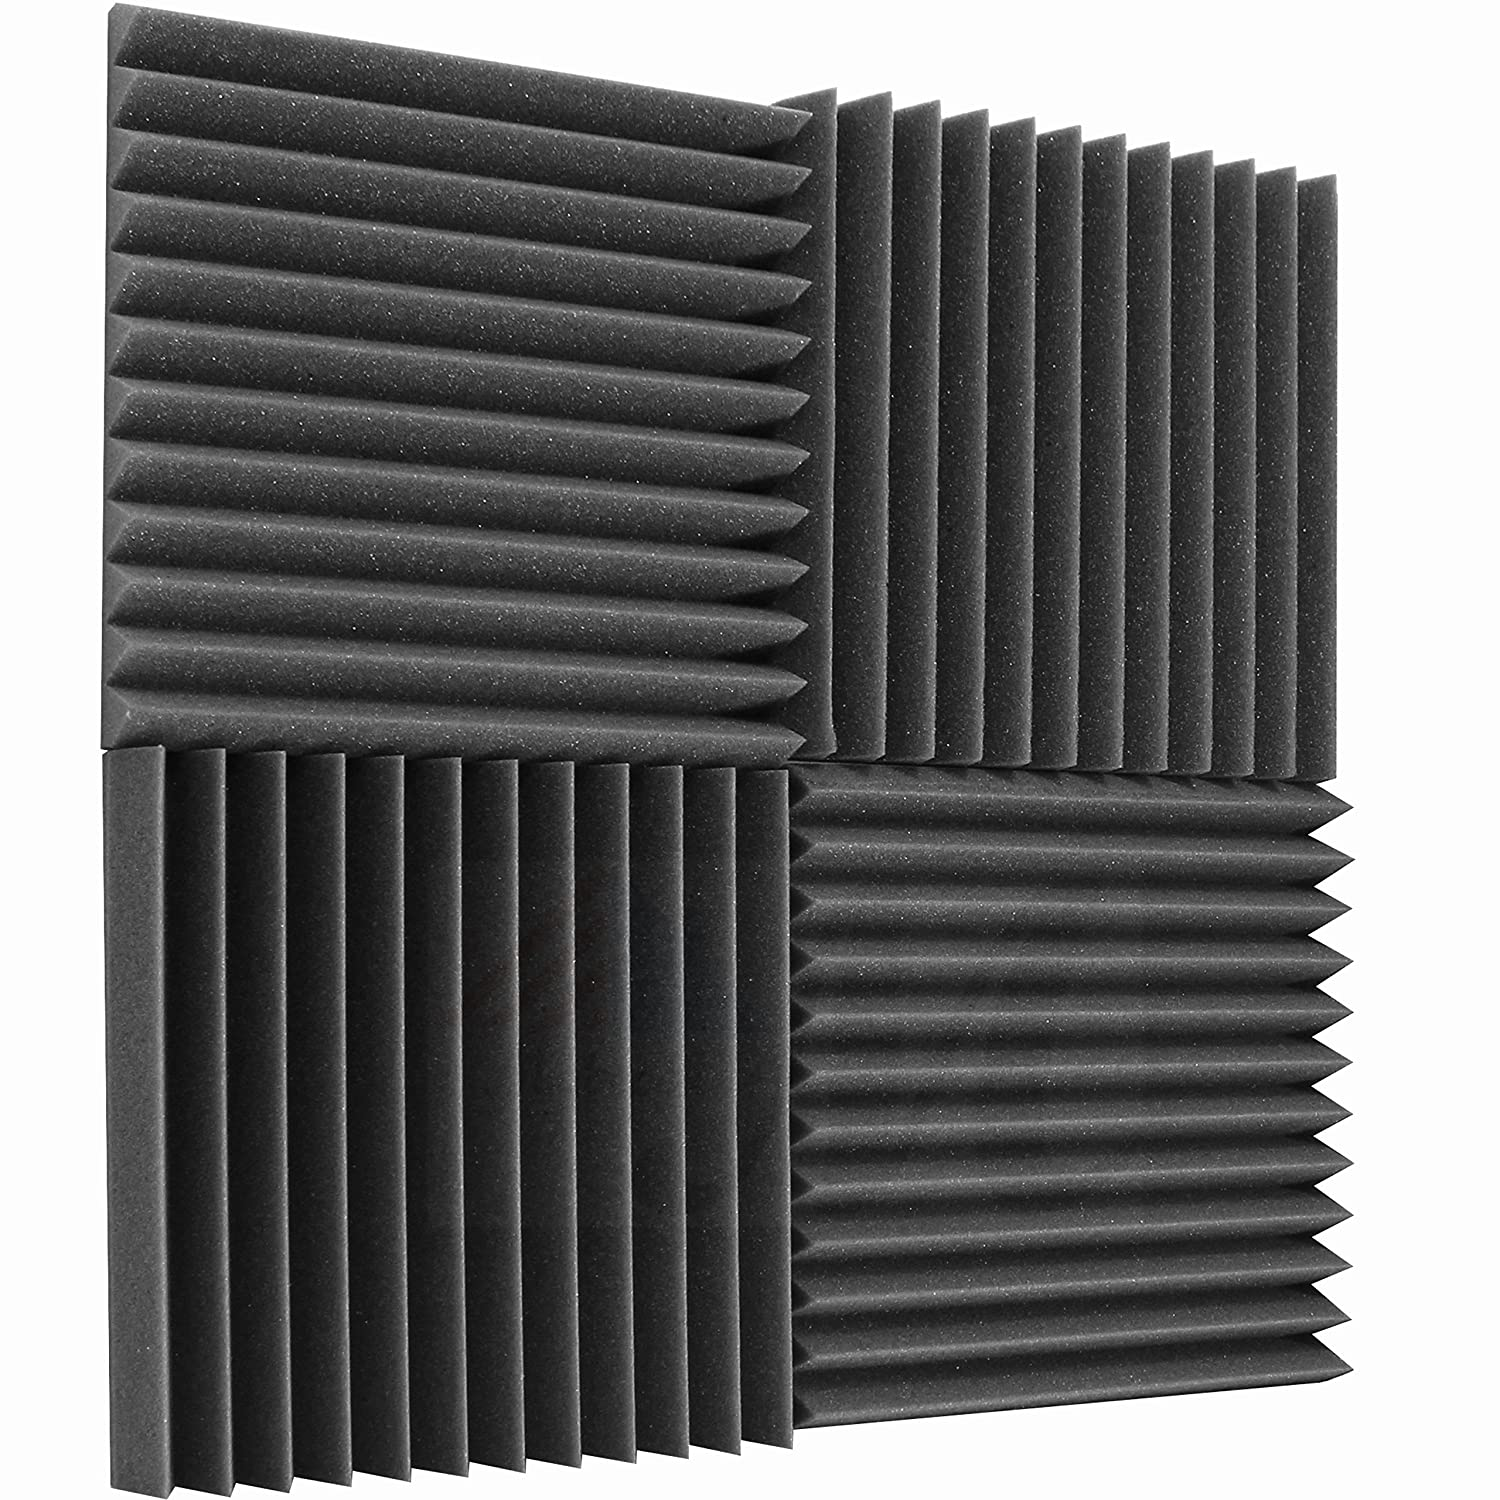 Mybecca 6 Pack Acoustic Foam Wedge 2 X 12 X 12 Studio Soundproofing Panels (6 Square Feet), Charcoal MB-Wedge2126